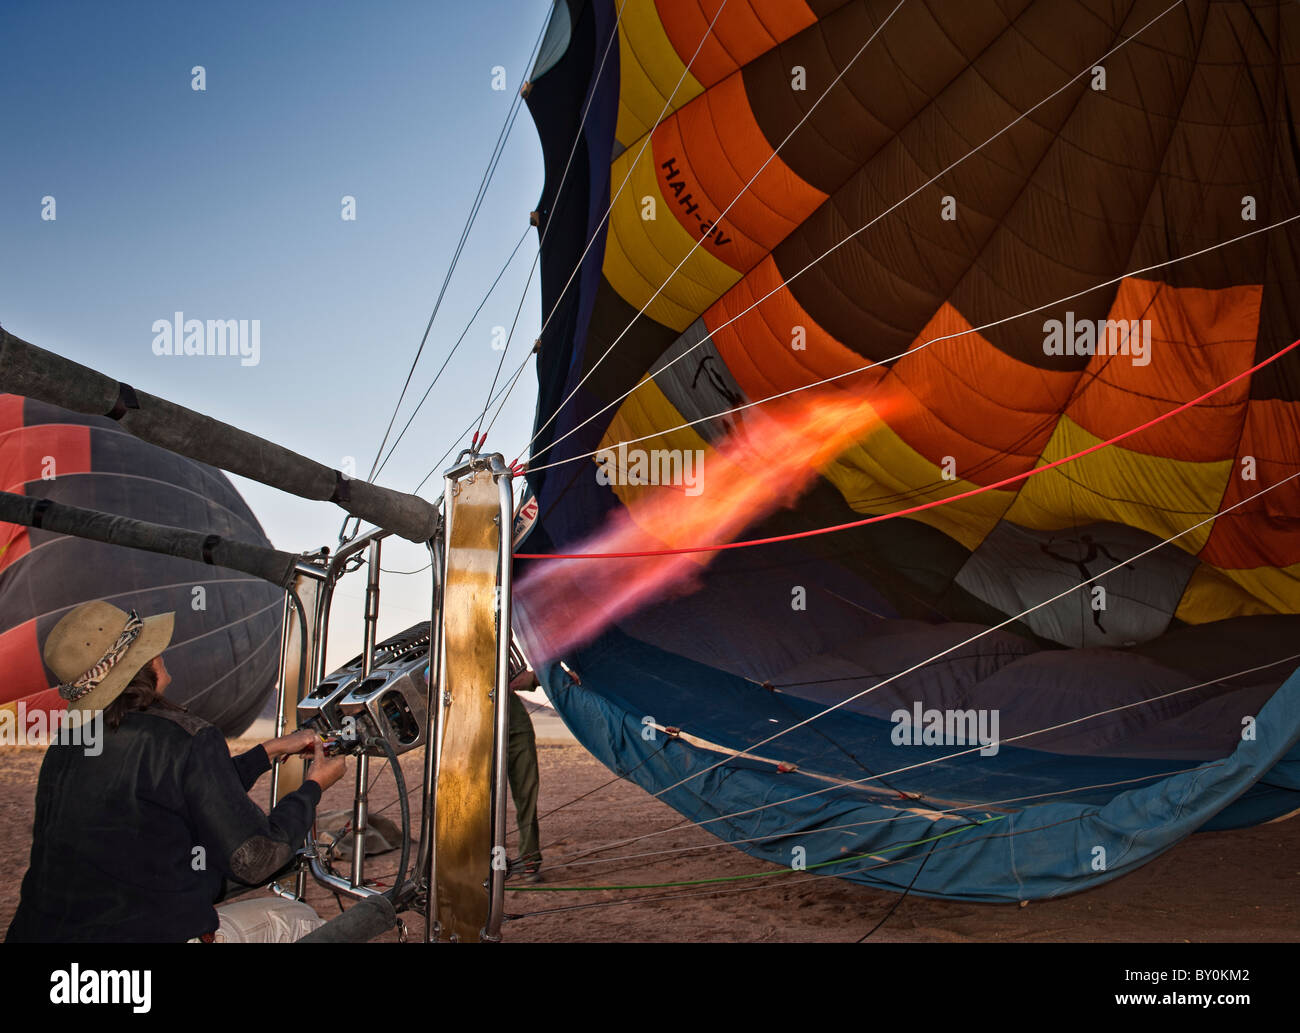 Pilot Astrid Gerhardt prepares this hot air balloon for take-off in Namib-Naukluft Park, Namibia. - Stock Image